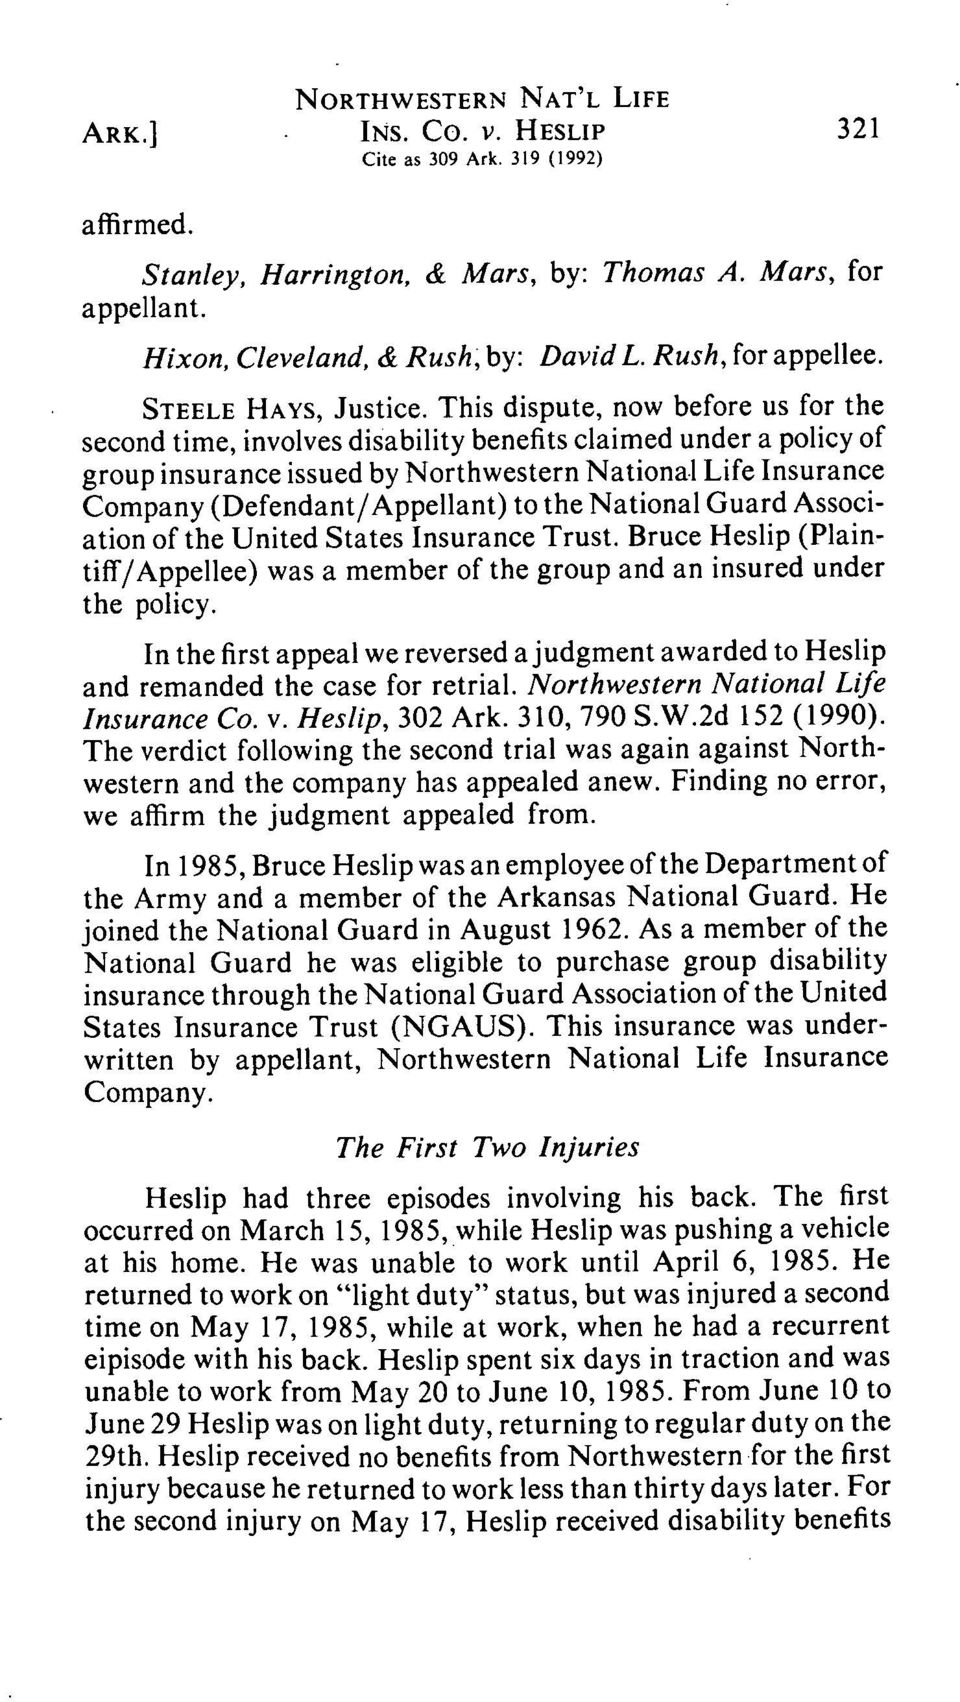 the National Guard Association of the United States Insurance Trust. Bruce Heslip (Plaintiff/Appellee) was a member of the group and an insured under the policy.